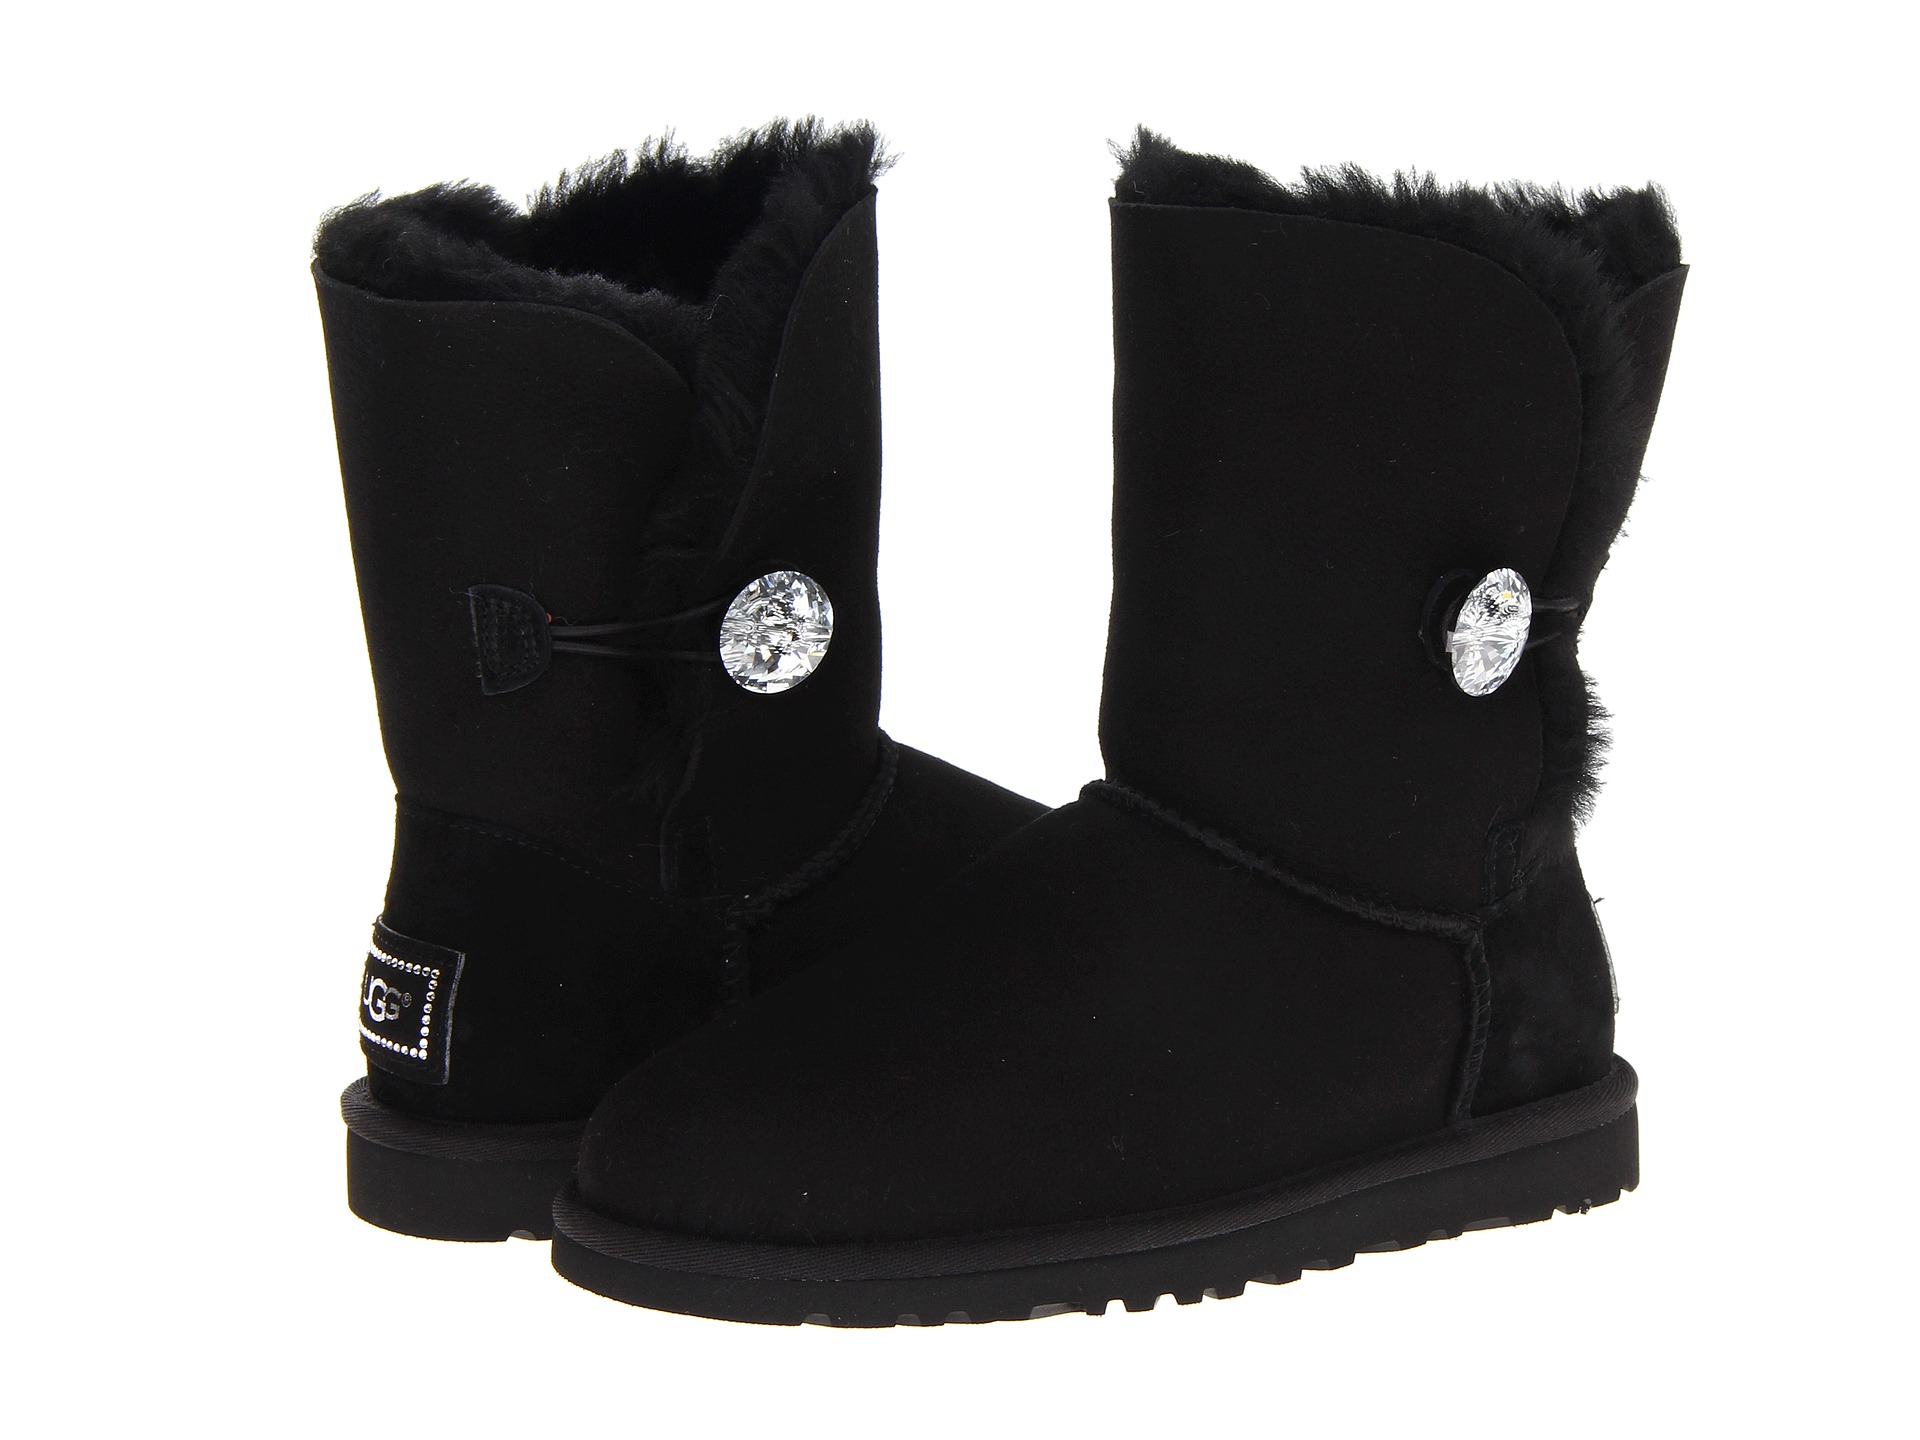 Bailey Button Ugg Boots On Sale